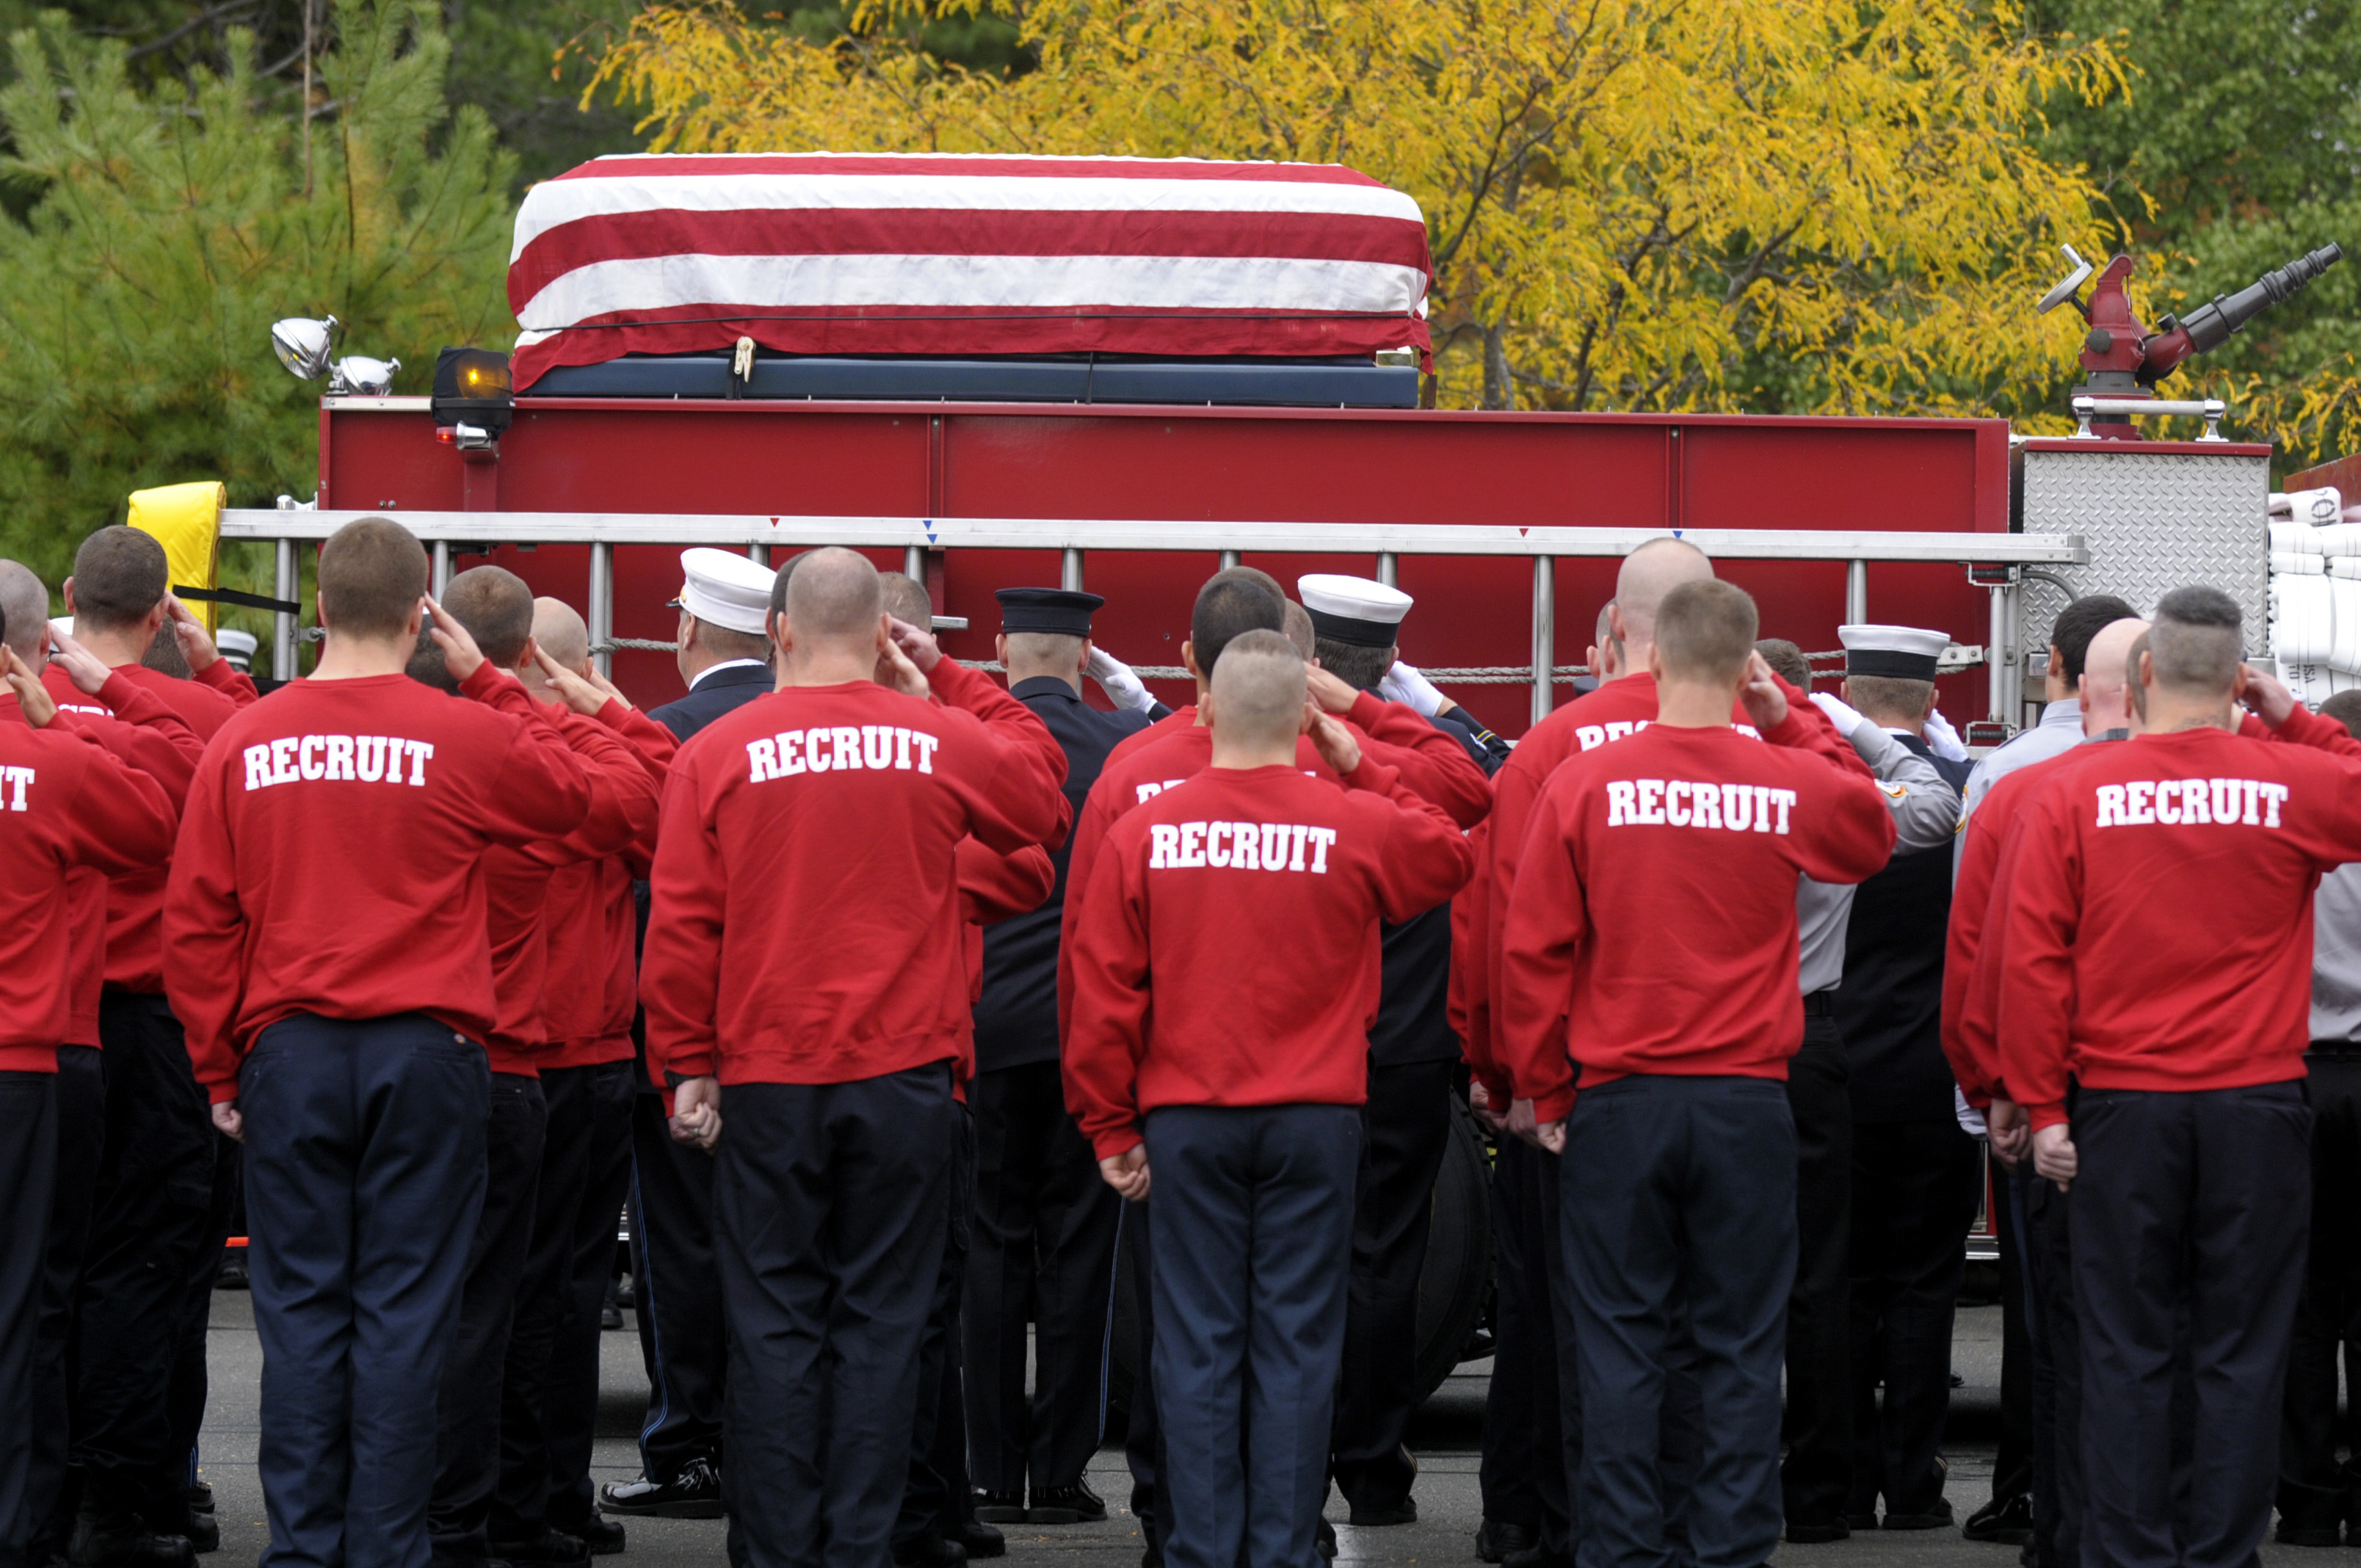 BLOOMFIELD, CT -  10.13.2014  Firefighter recruits from the Connecticut Fire Academy salute the casket of Hartford firefighter Kevin Bell at First Cathedral in Bloomfield. Bell perished in a blaze on Blue Hills Avenue last Tuesday night. Patrick Raycraft |  praycraft@courant.com